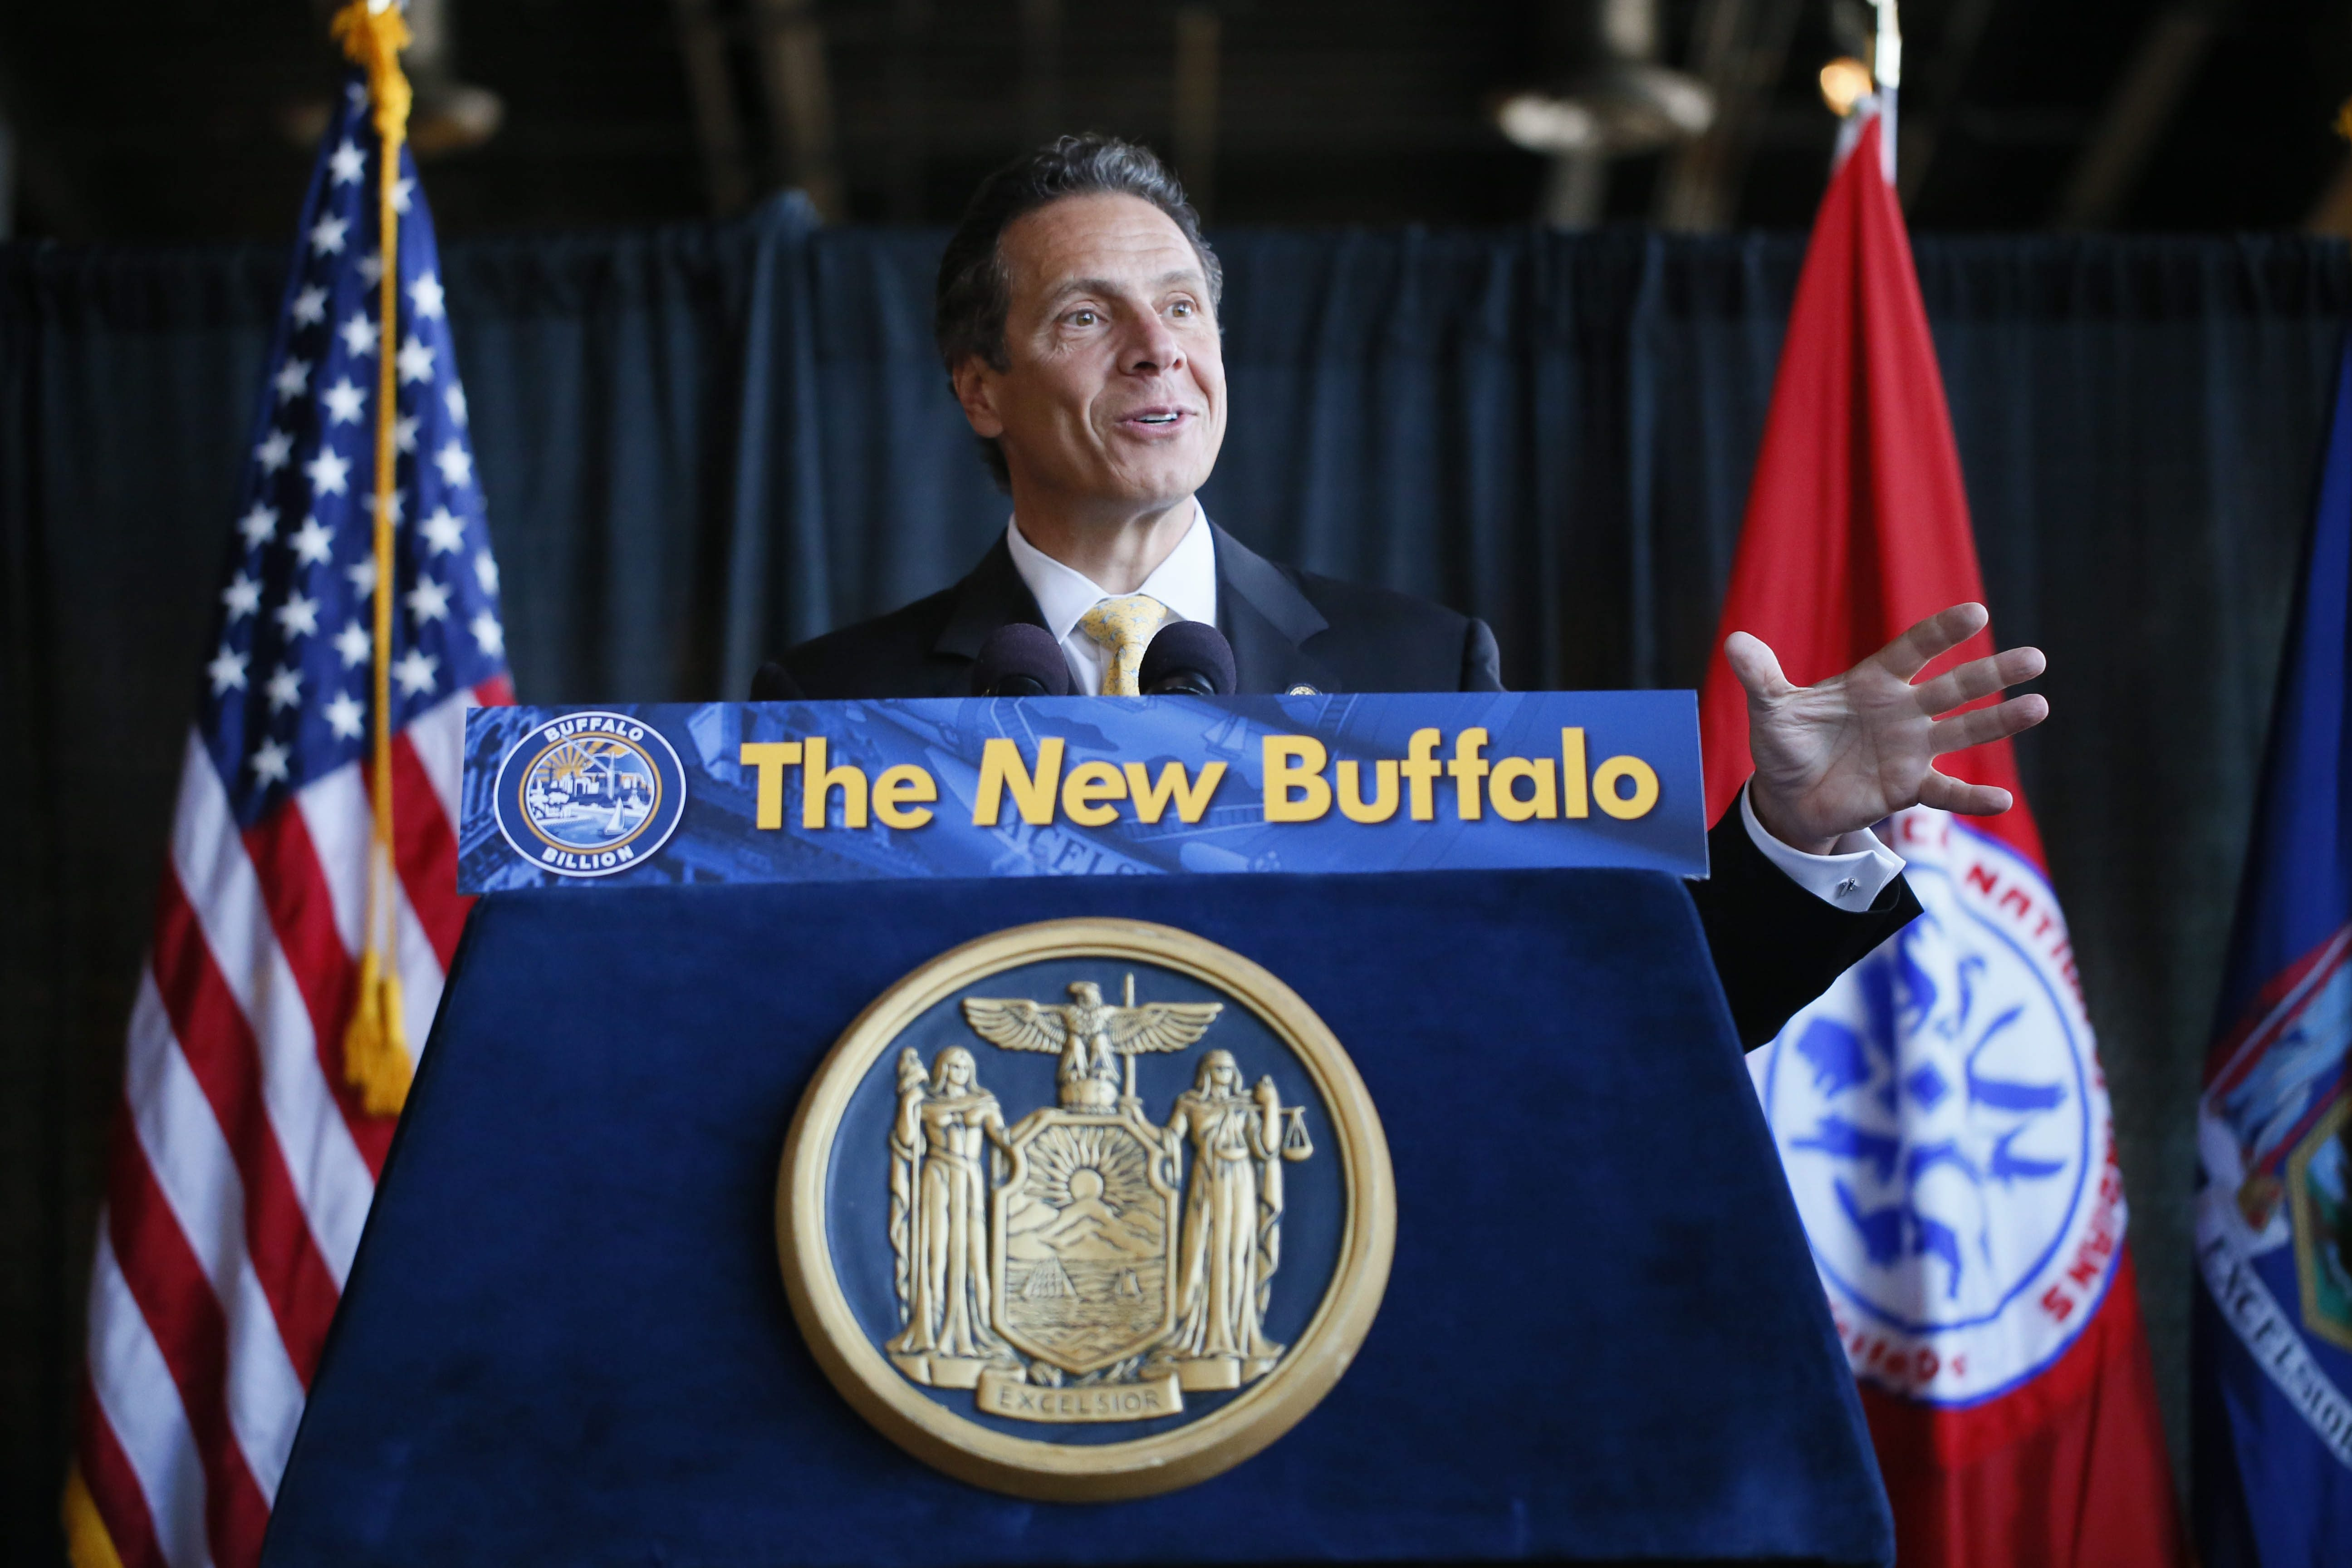 Gov. Andrew M. Cuomo speaks during an event to mark the end of a 4½-year dispute between the state and the Seneca Nation of Indians over the casino compact at First Niagara Center on Wednesday.